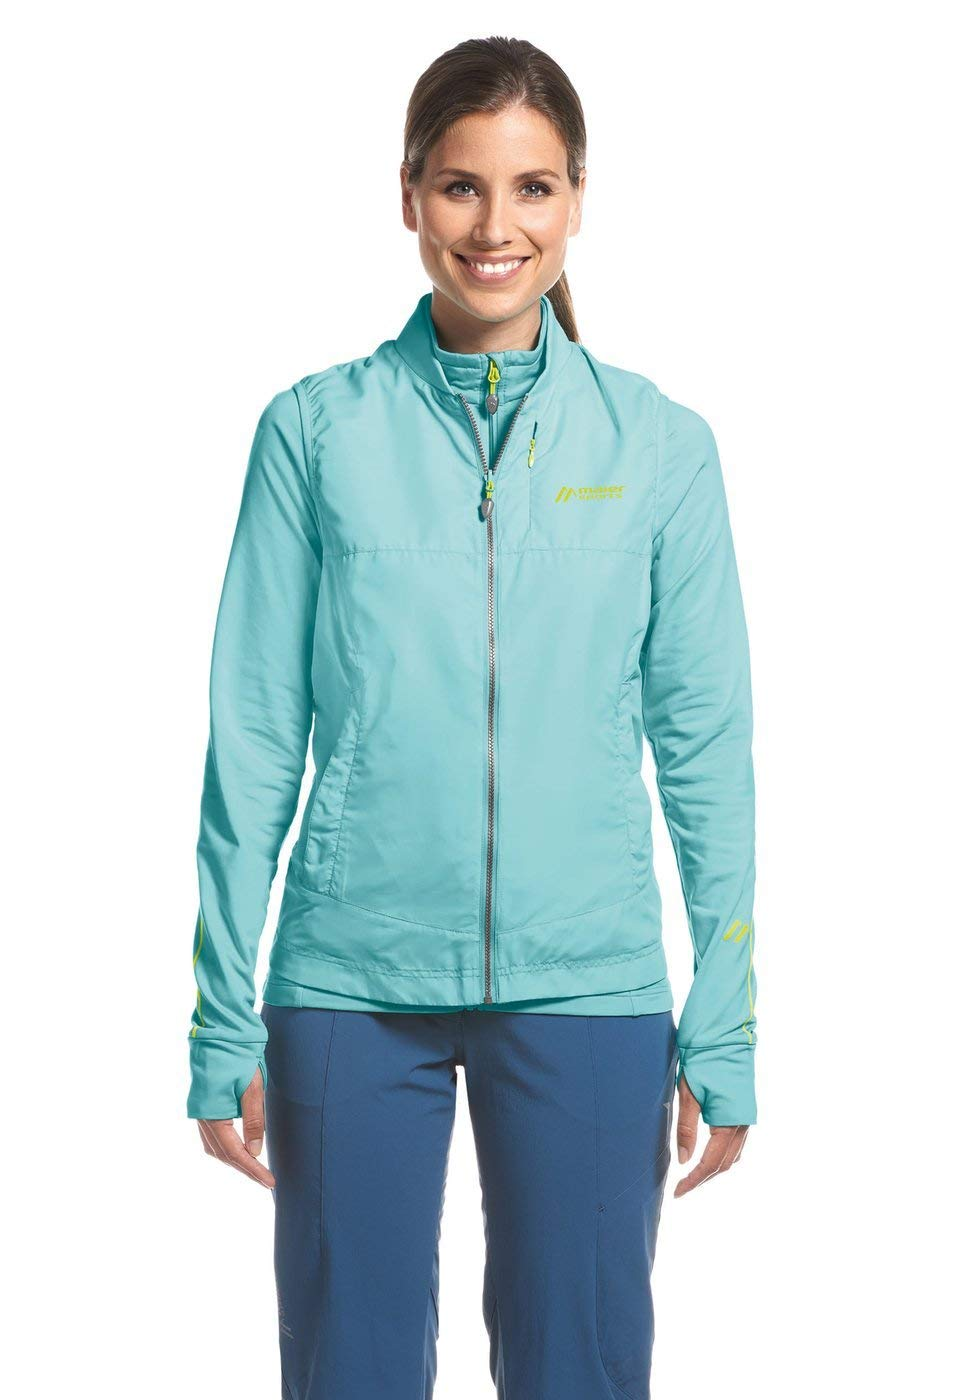 Maier Sports Damen Tour Wind Microfleecejacke + Weste - blue radiance